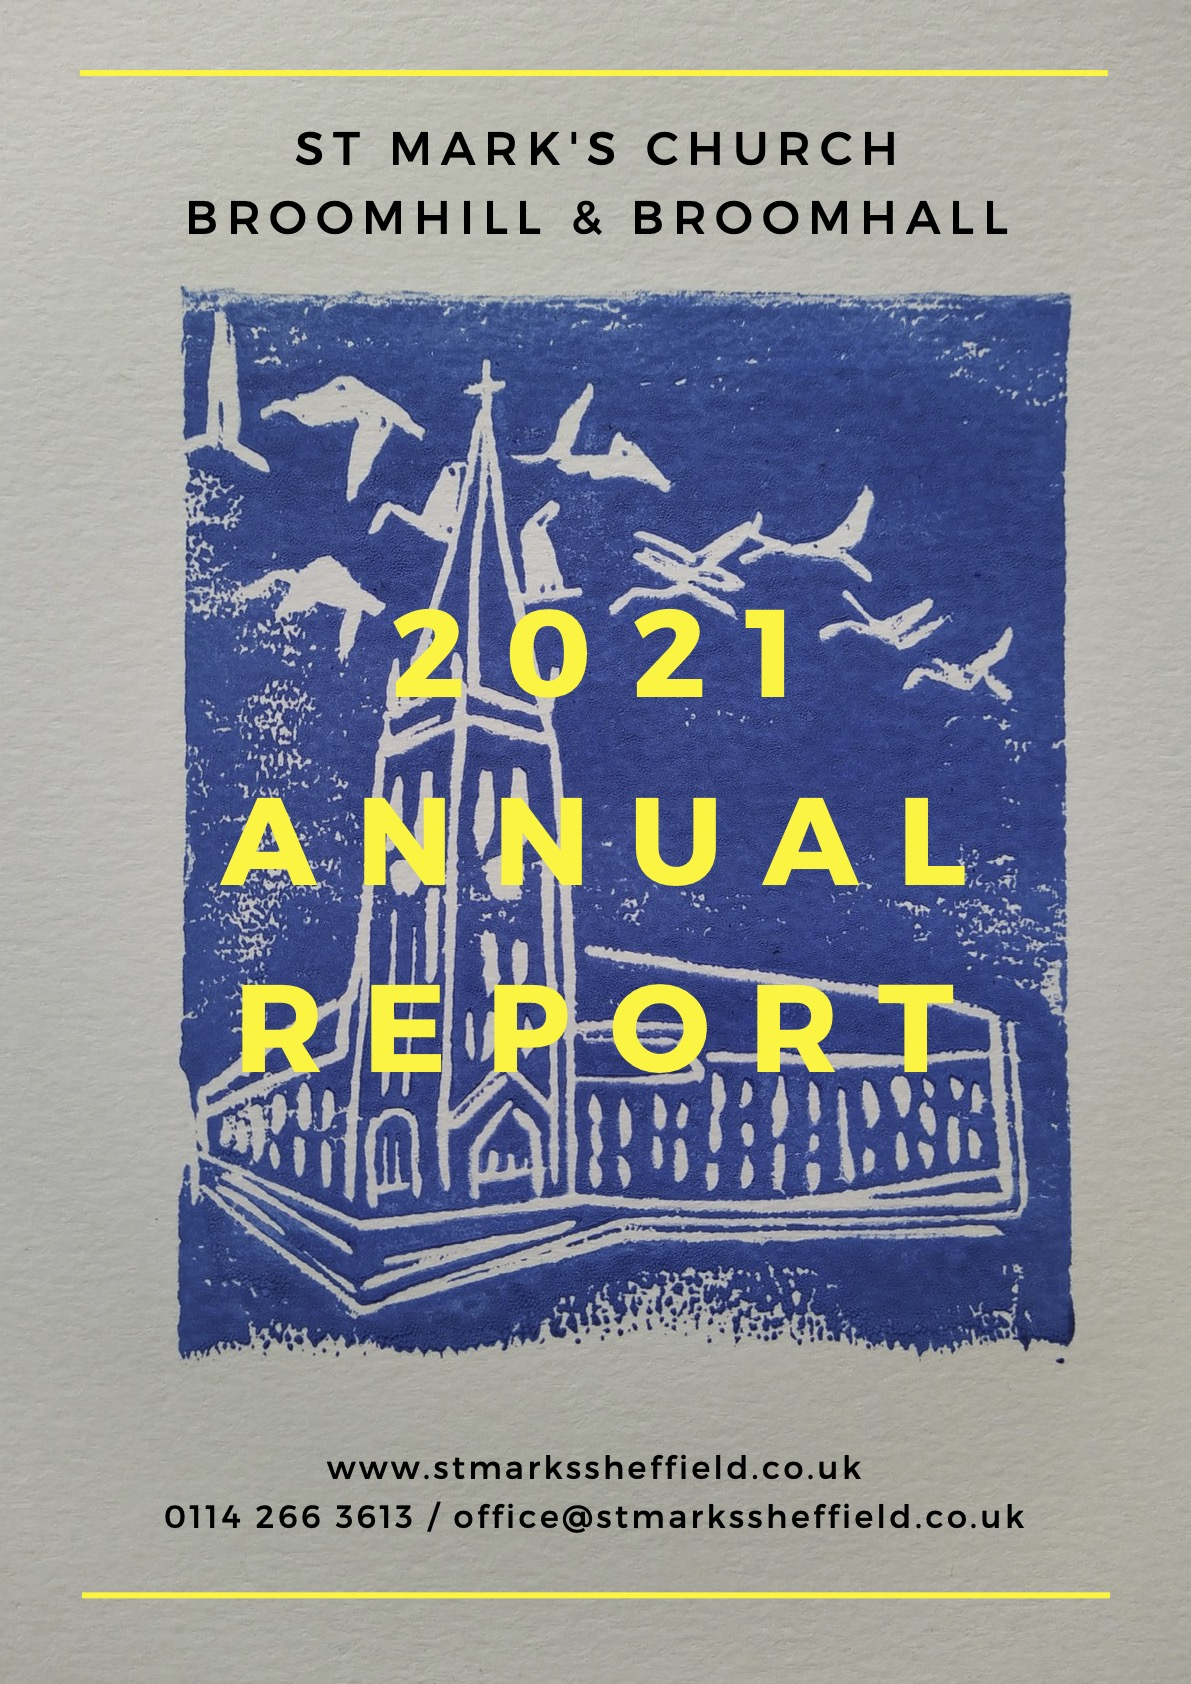 2021 Annual report cover image: lithograph print of St Marks